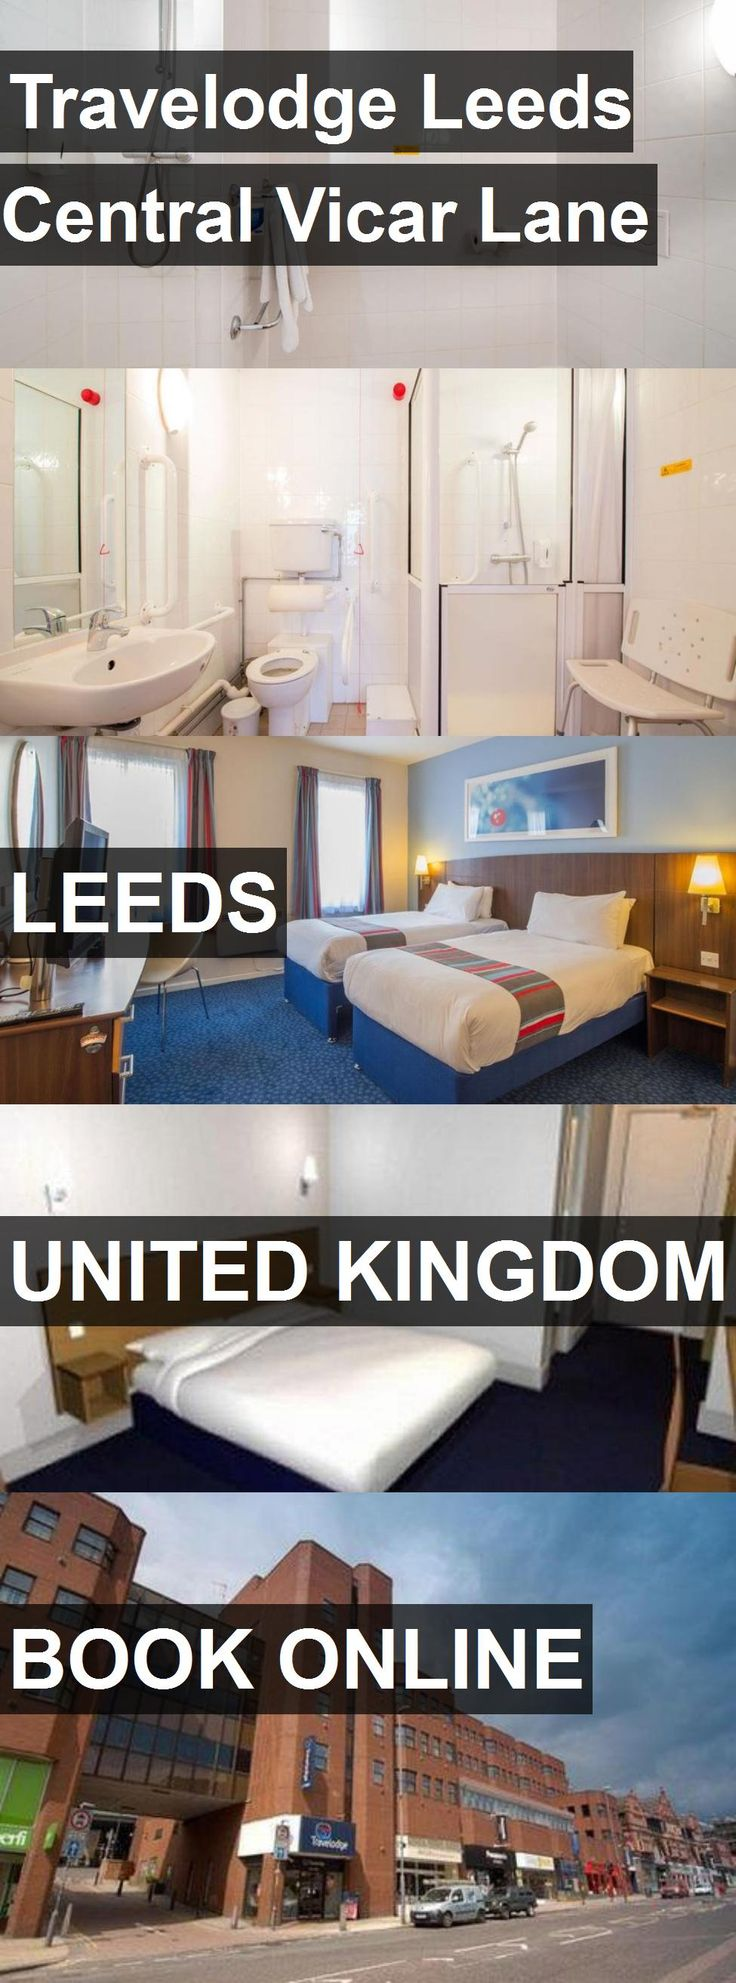 Hotel Travelodge Leeds Central Vicar Lane in Leeds, United Kingdom. For more information, photos, reviews and best prices please follow the link. #UnitedKingdom #Leeds #travel #vacation #hotel